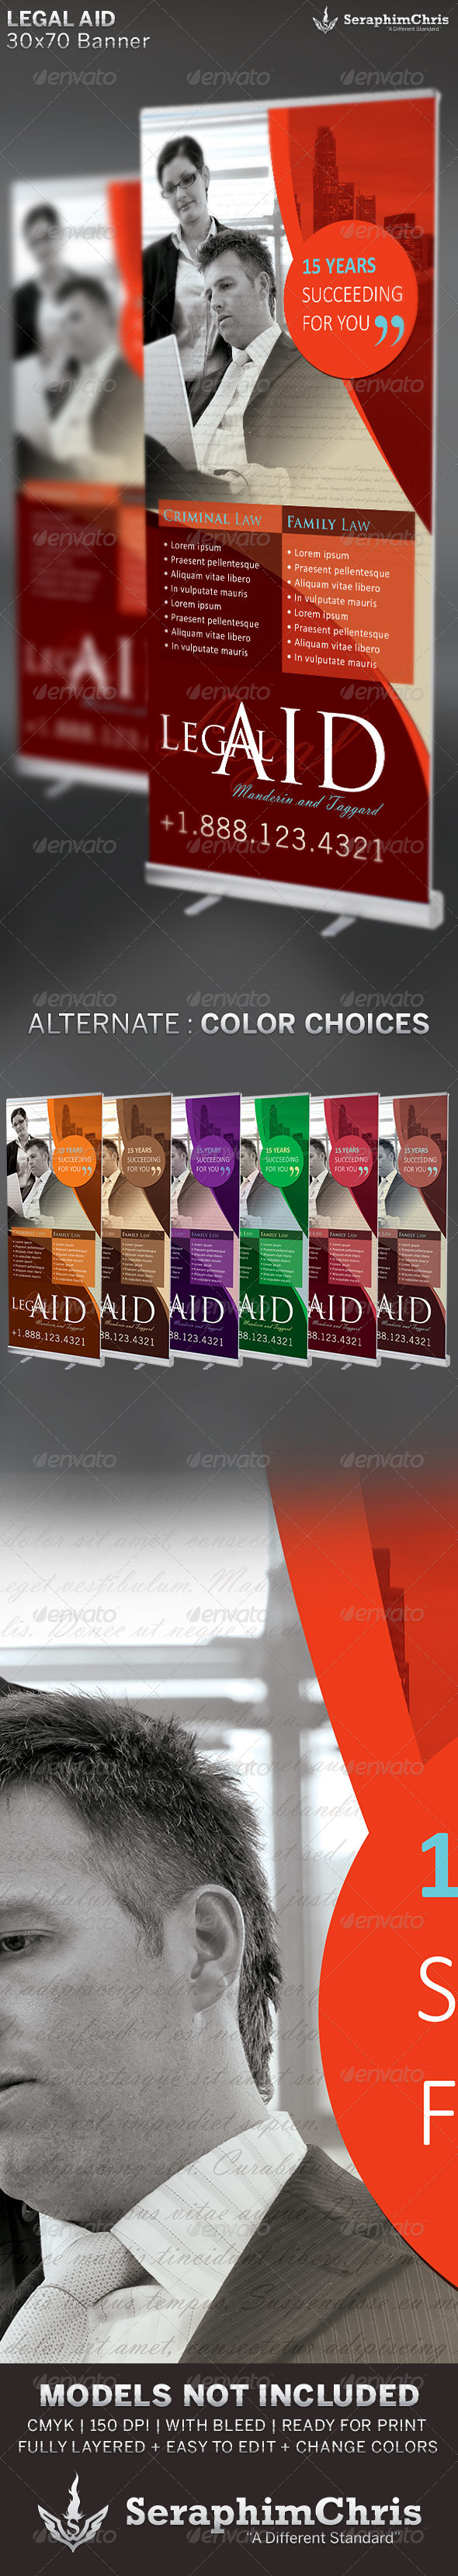 GraphicRiver Legal Aid Banner 2 Template 6534277